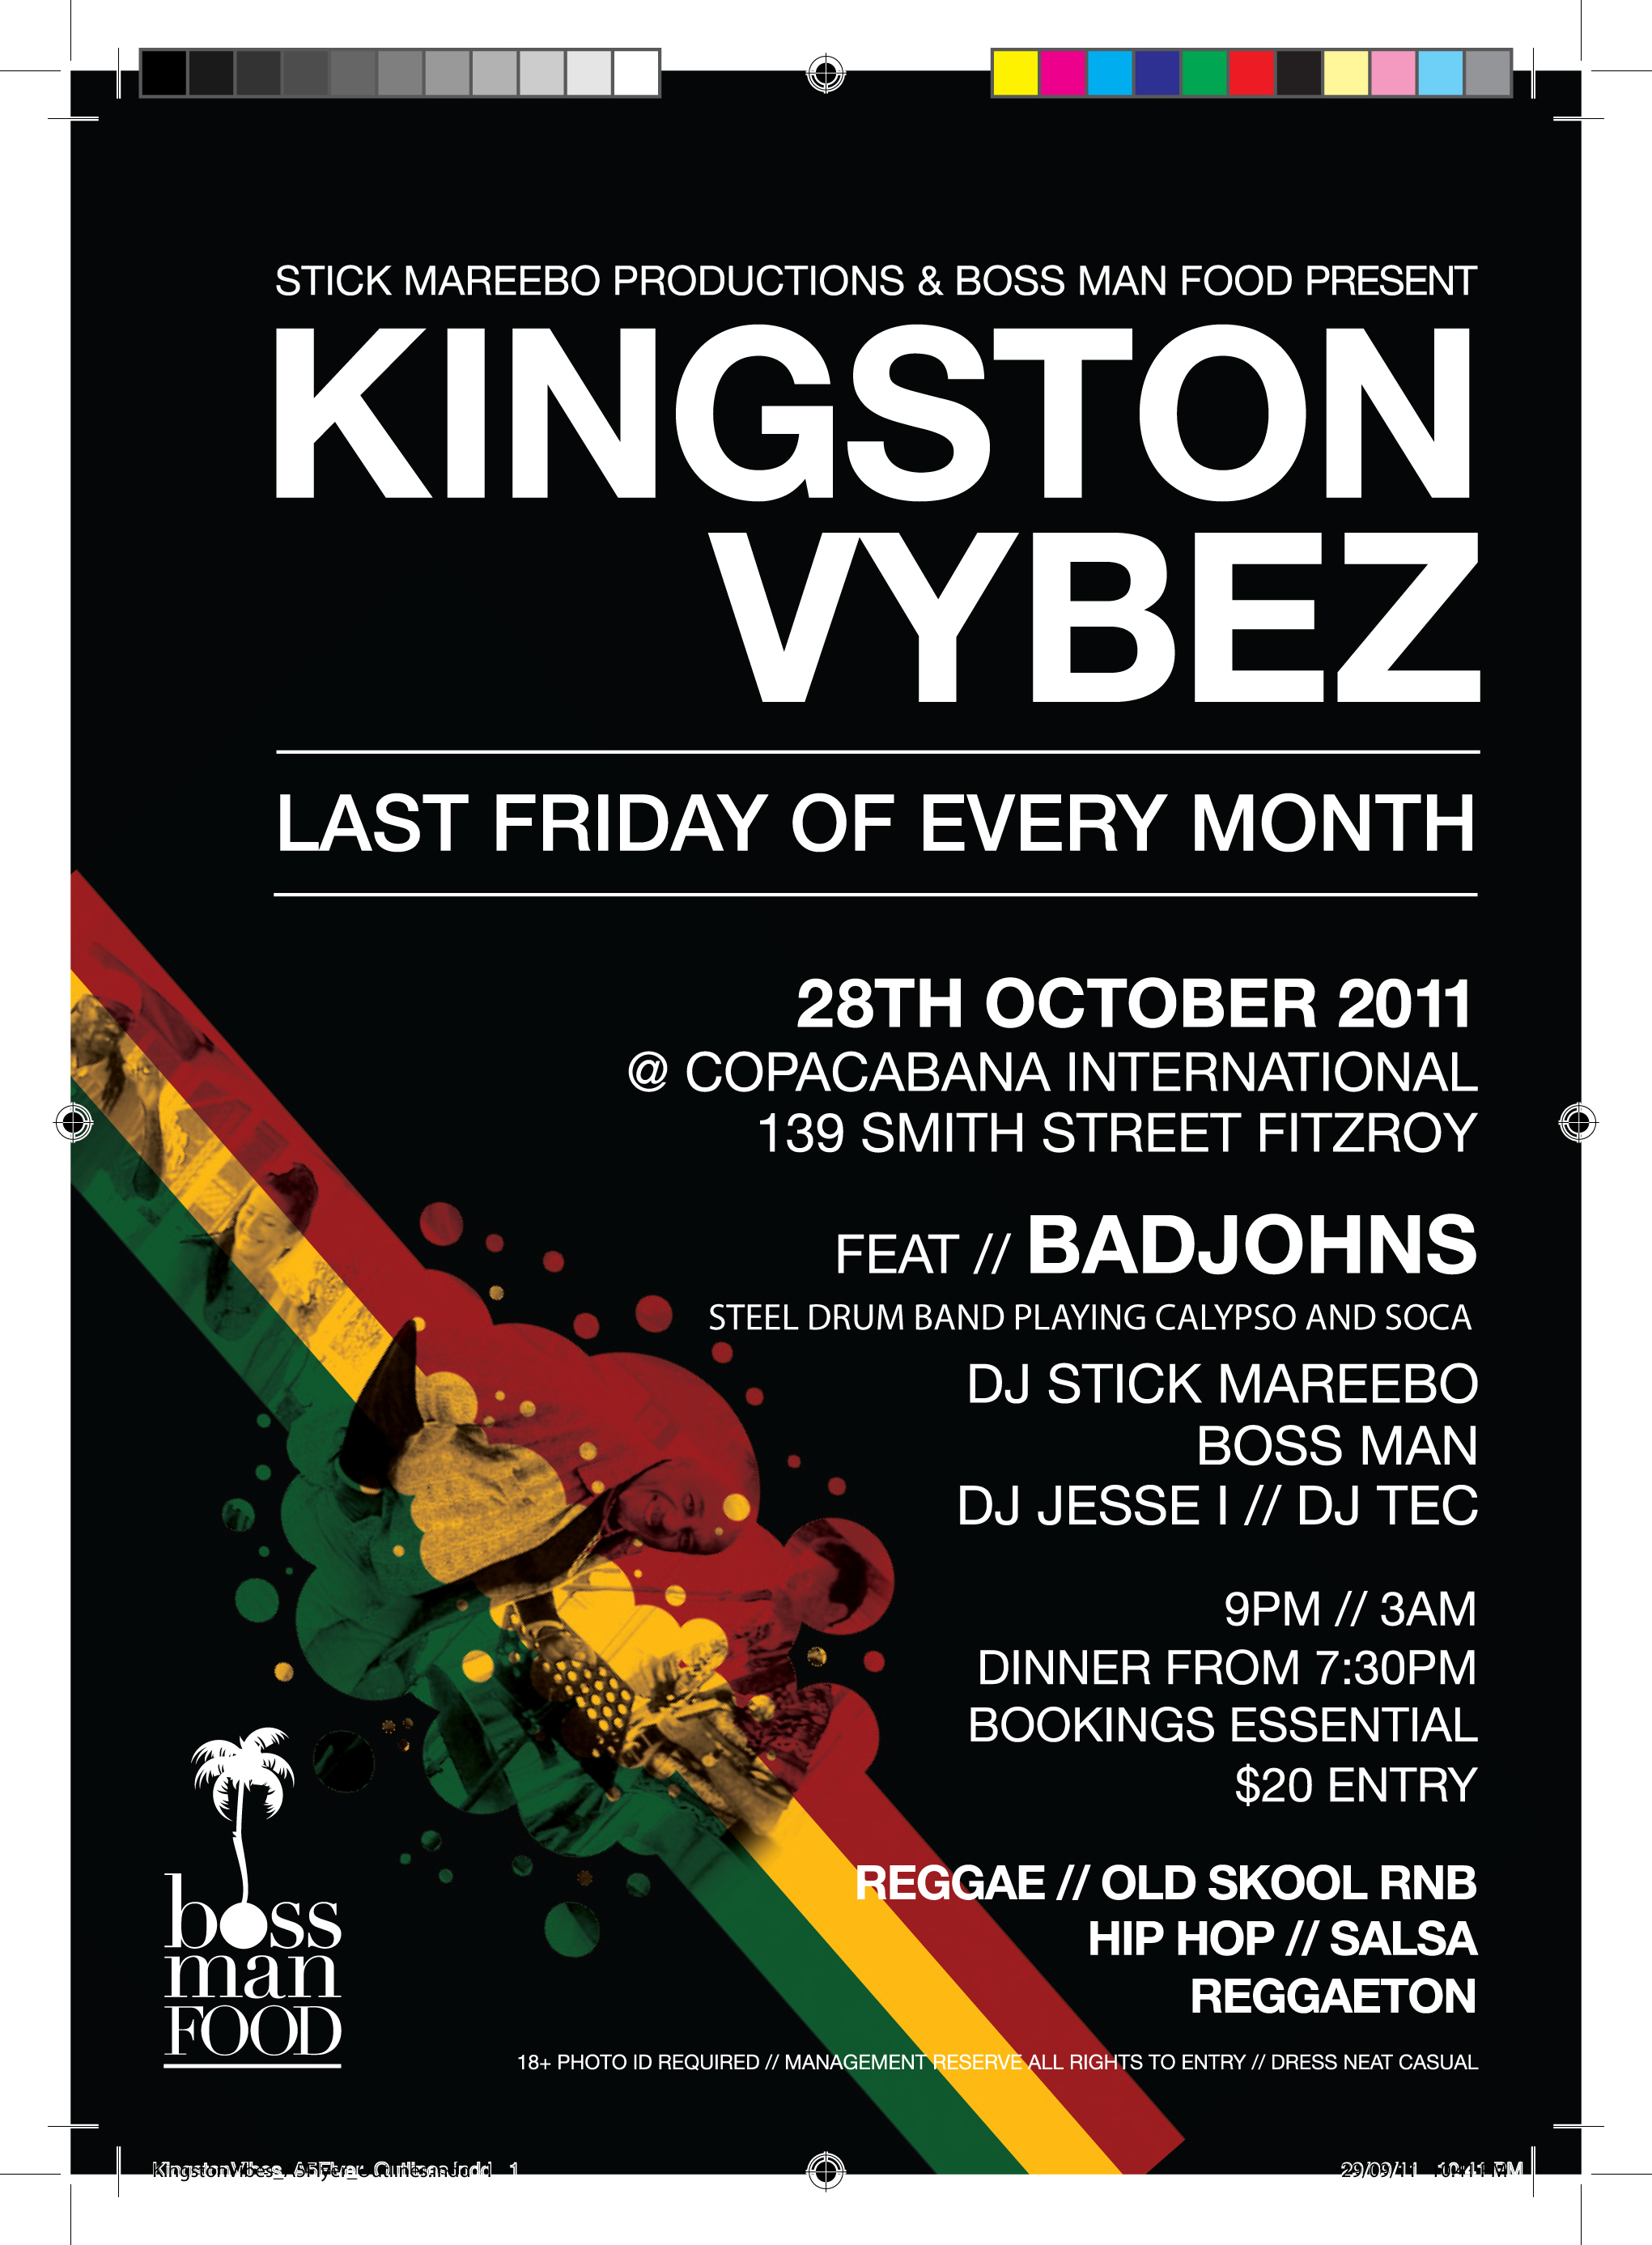 CaribVic & The Badjohns Steelband with Kingston Vybez at the Copacabana